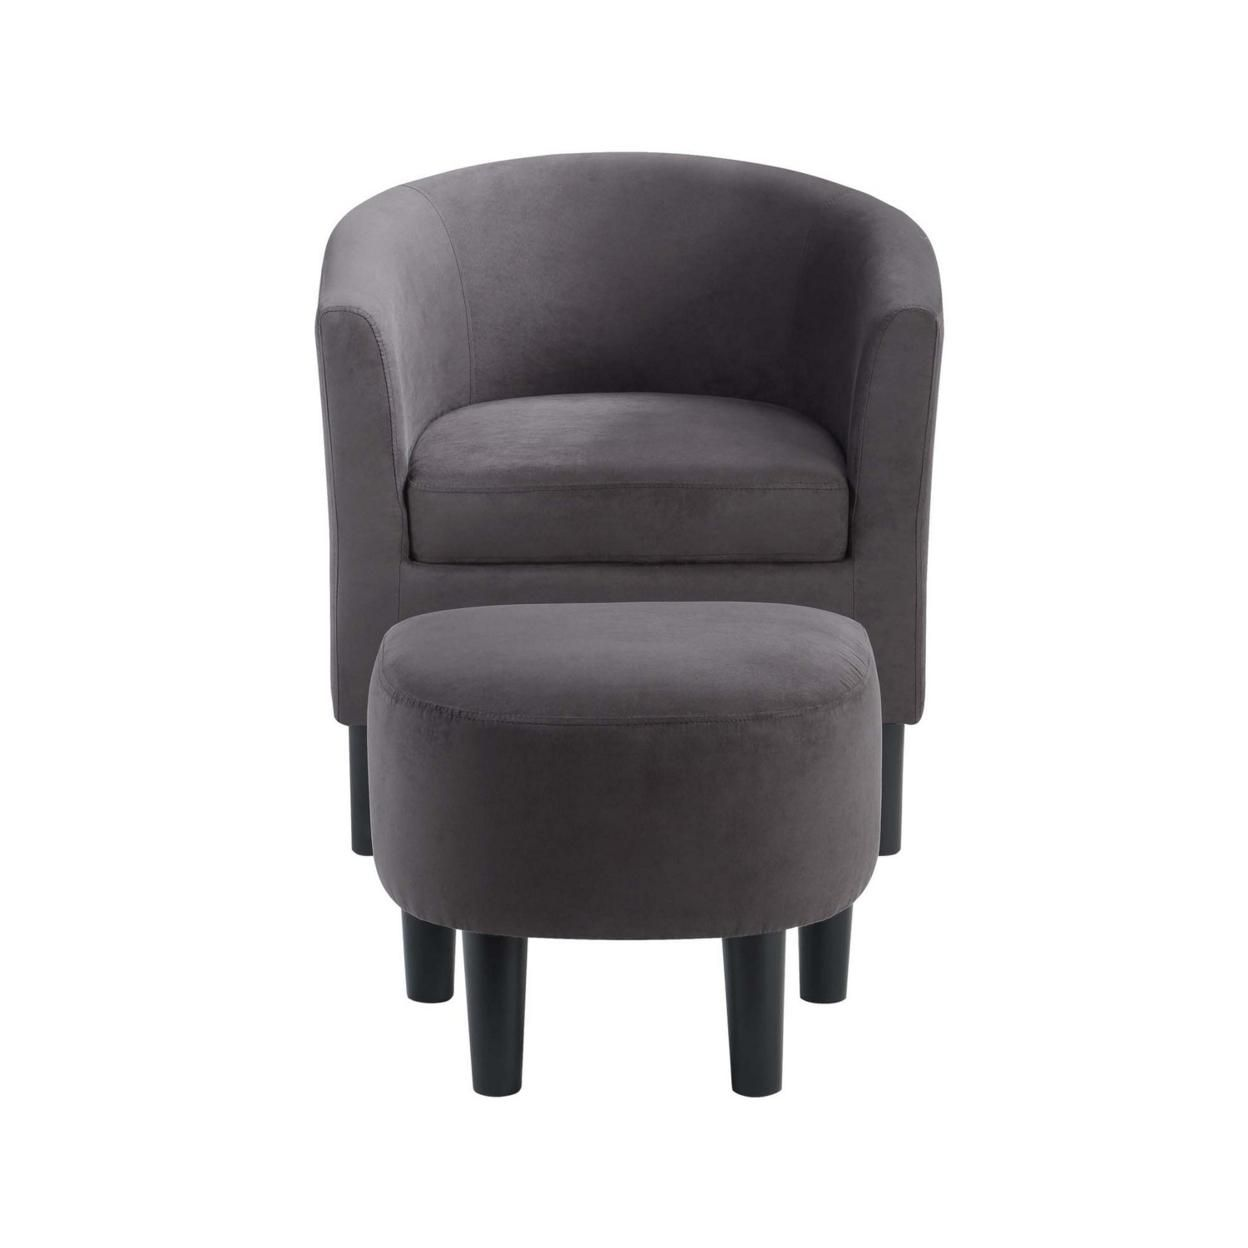 Take a Seat Churchill Accent Chair with Ottoman, Dark Gray